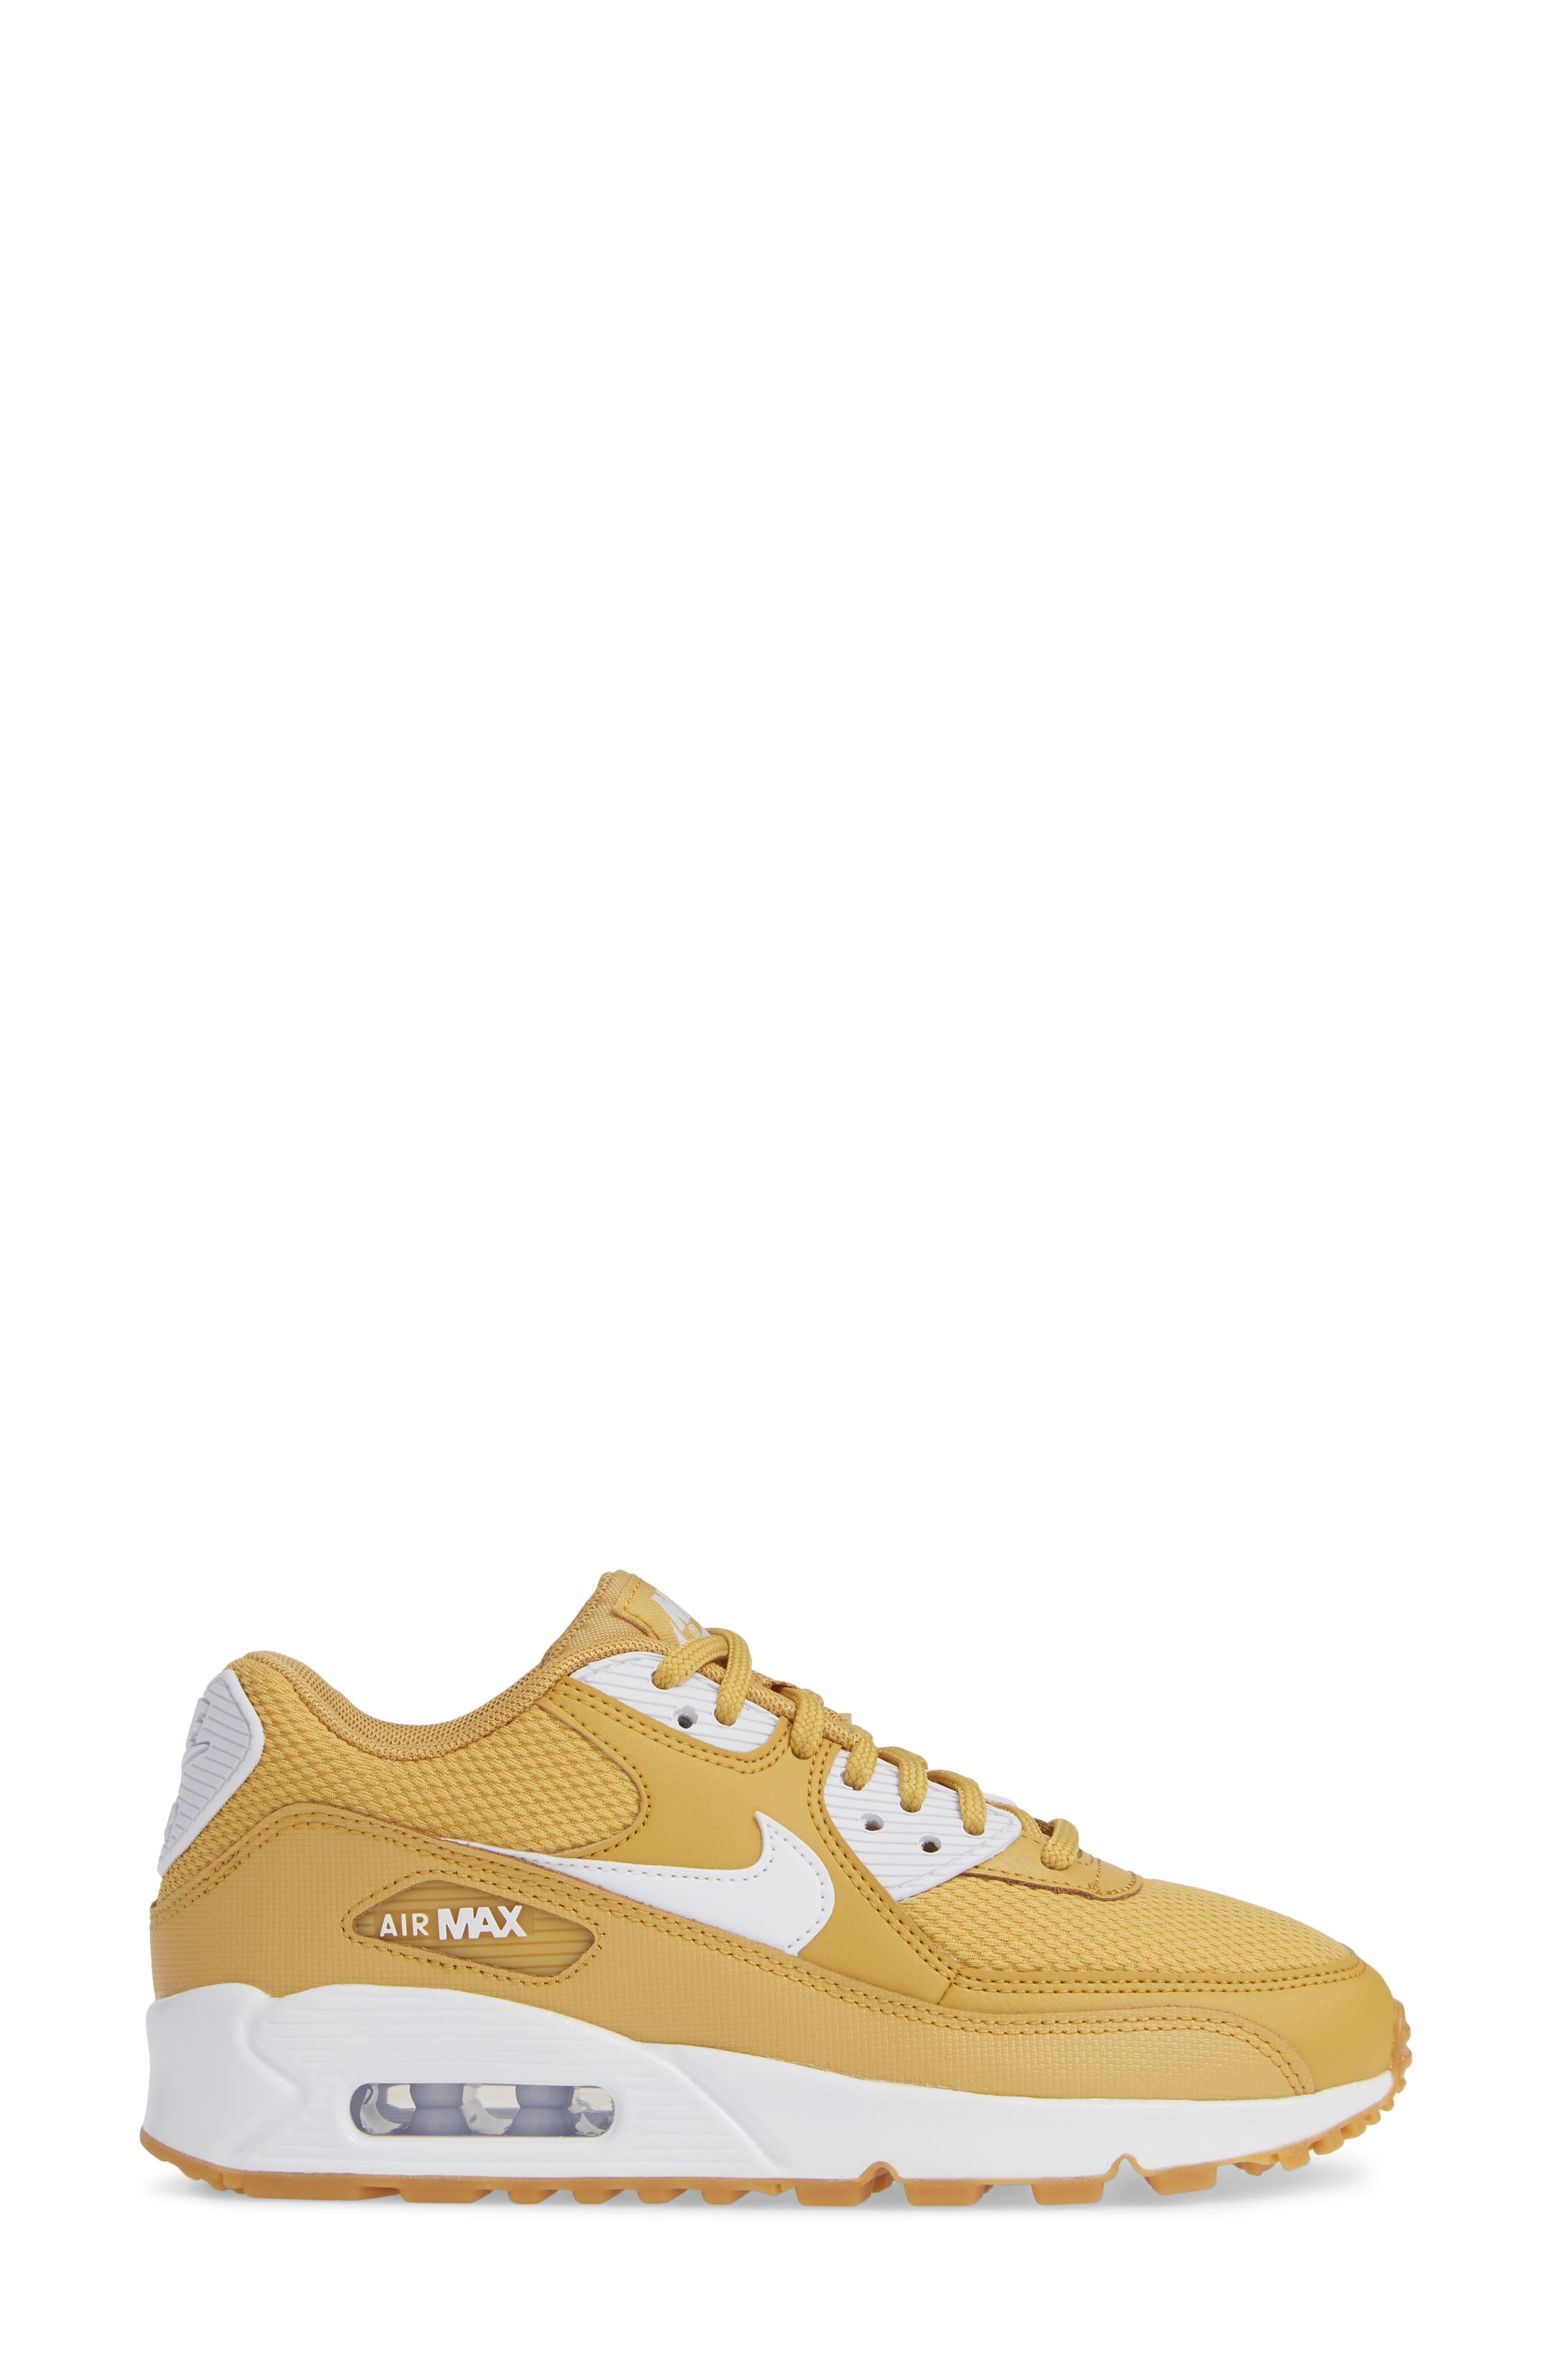 'Air Max 90' Sneaker,                             Alternate thumbnail 3, color,                             WHEAT GOLD/ WHITE/ LIGHT BROWN